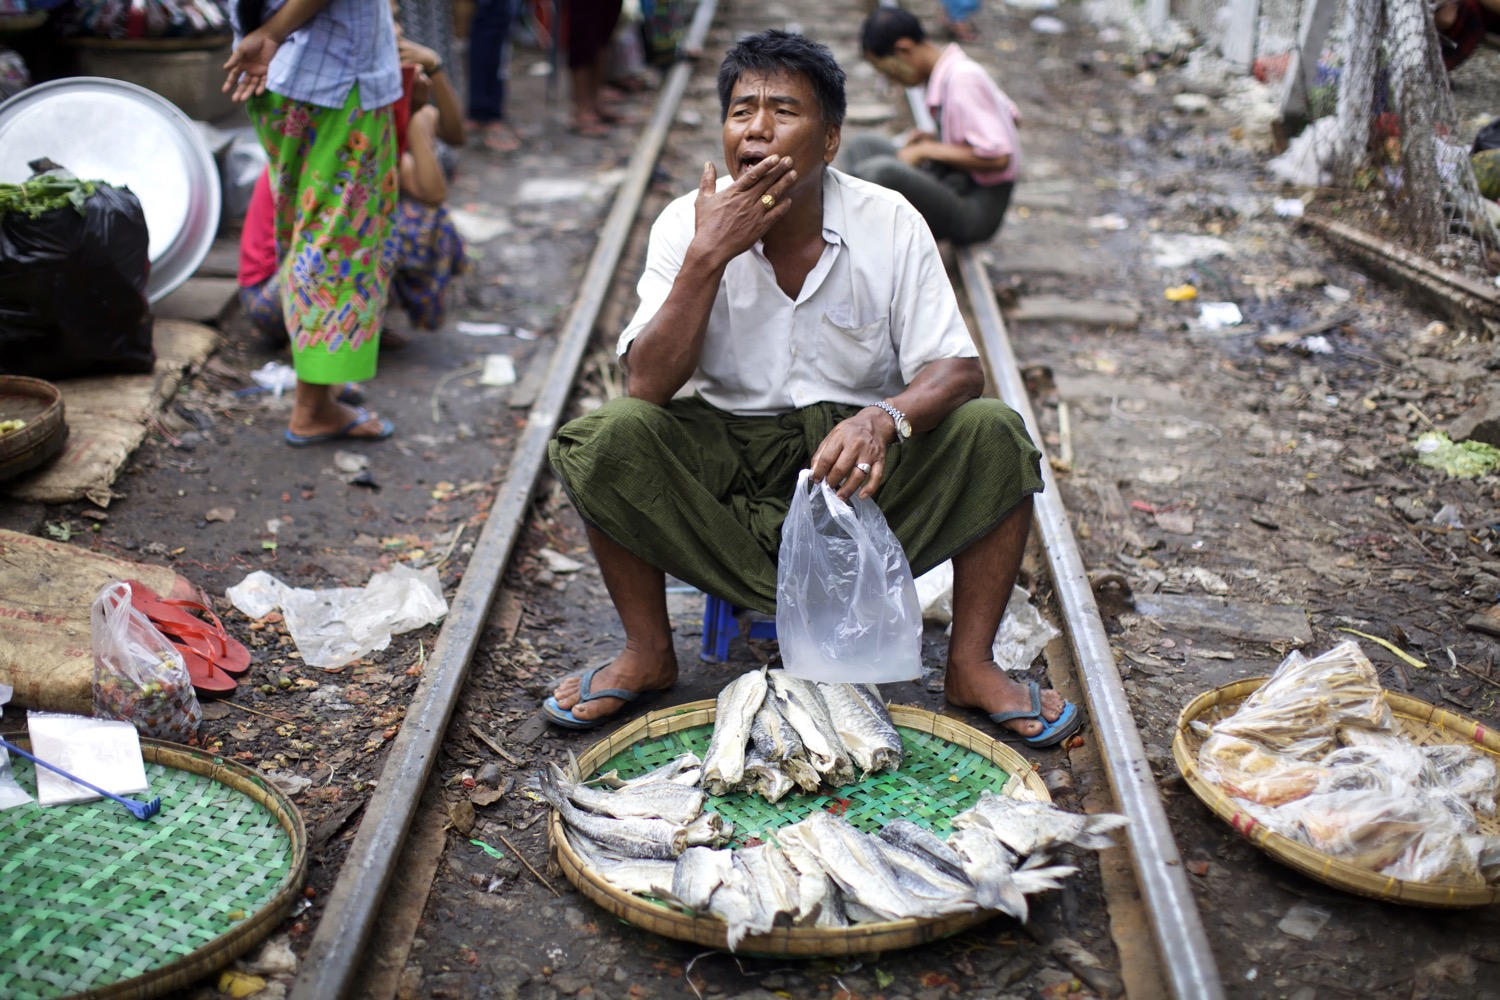 Five Essential Shots You Need to Get for Street Market Photography - man selling fish at a market on the train tracks